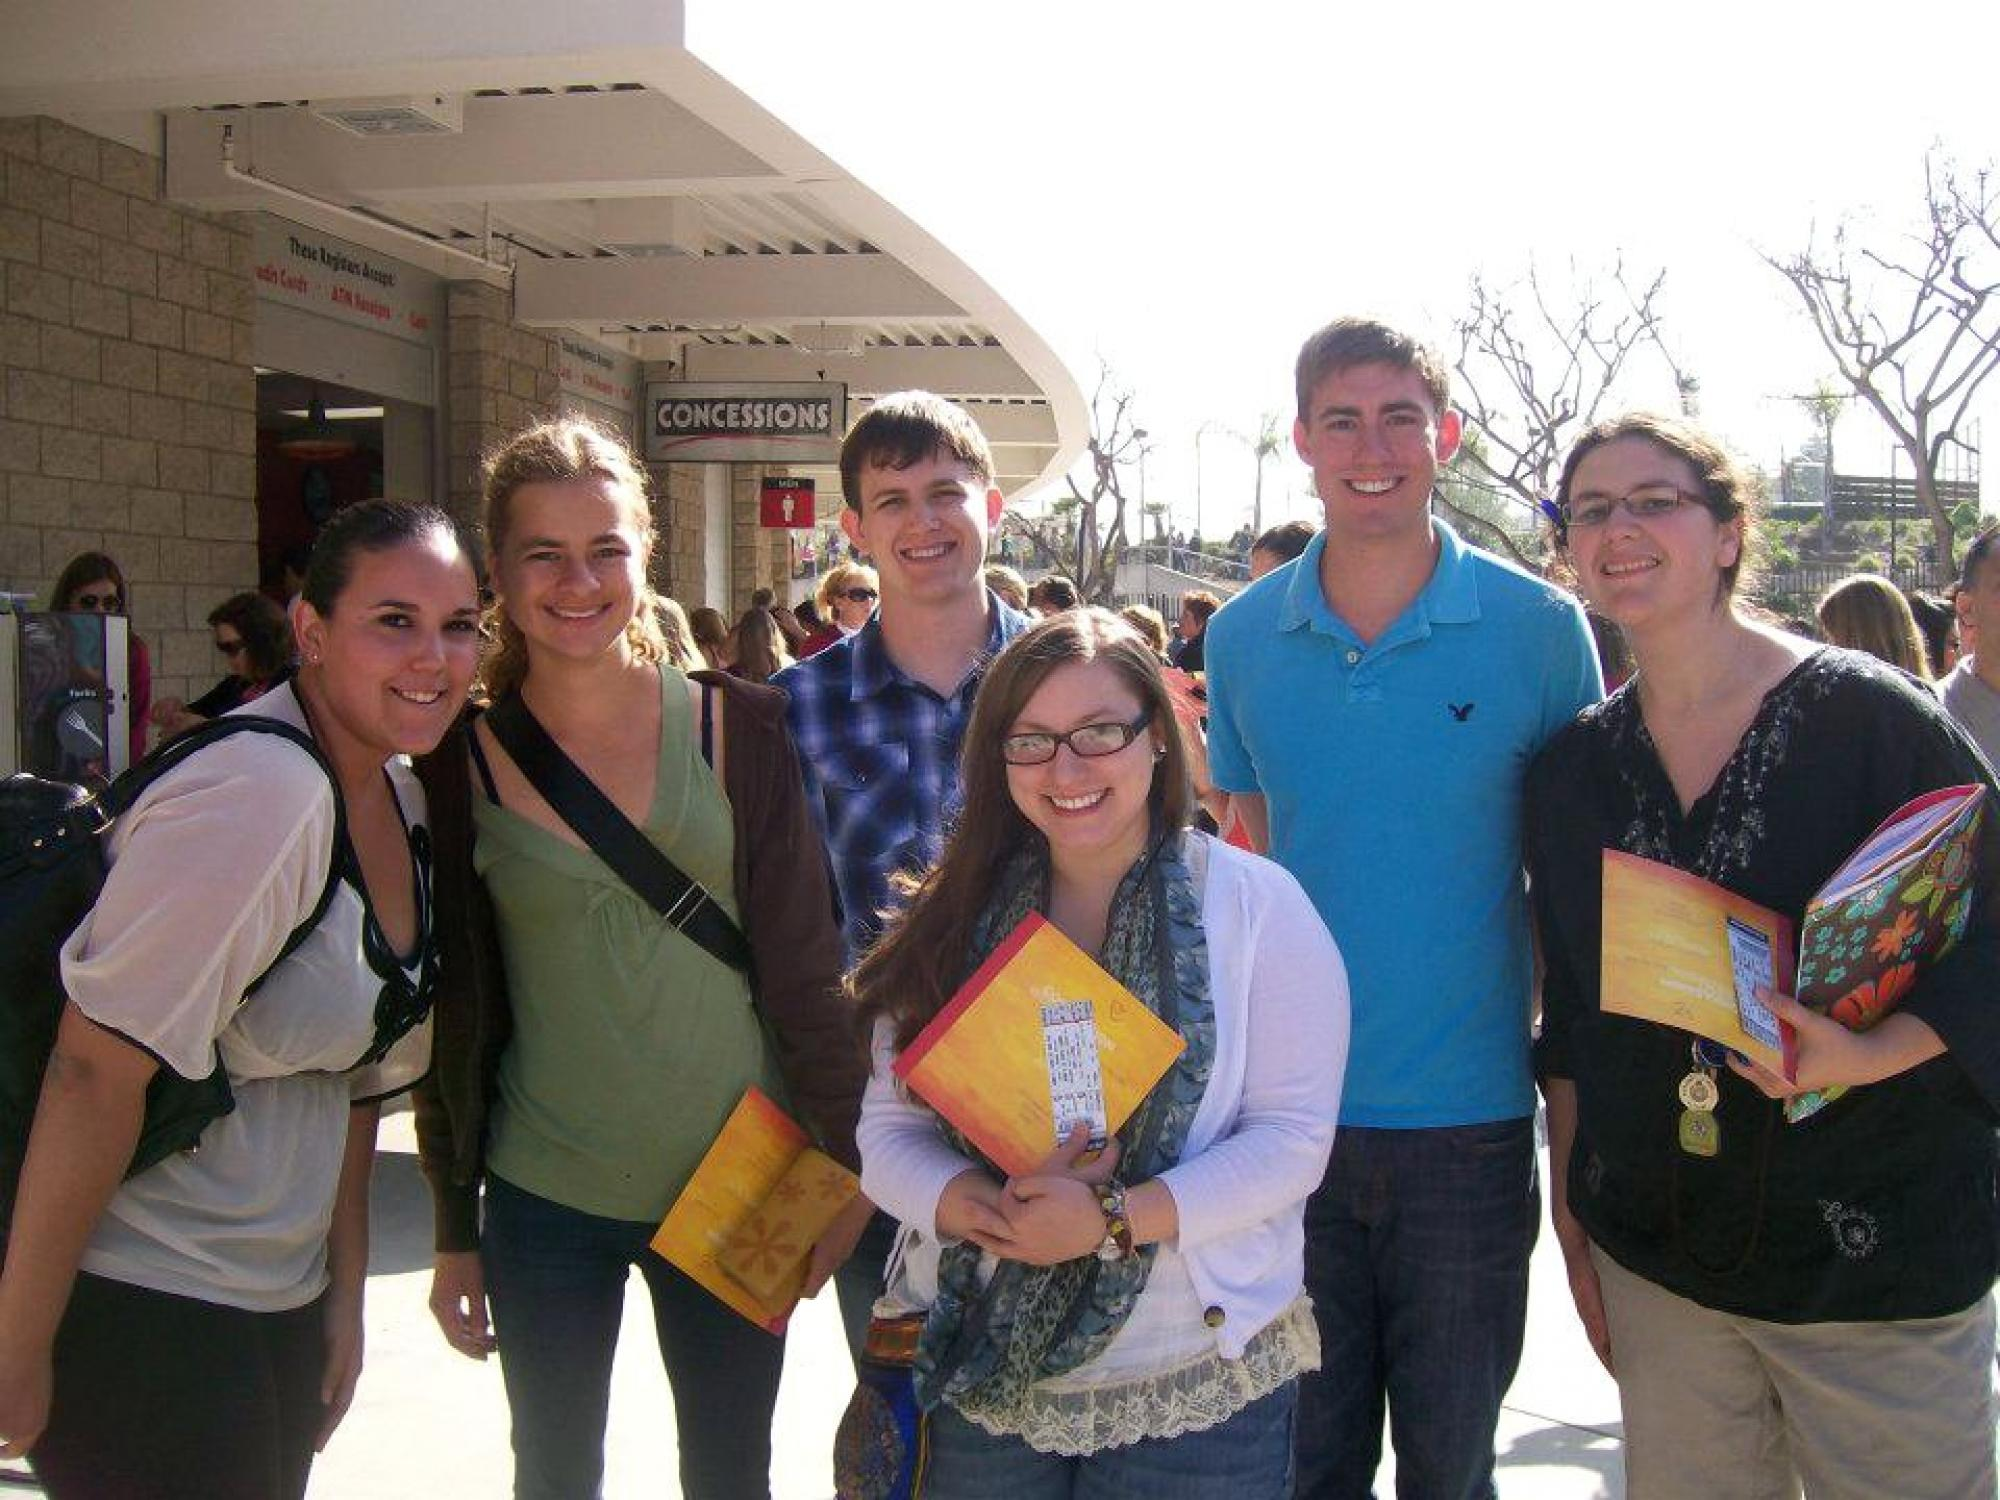 UA students traveled to San Diego to attend the Dalai Lama's lecture as the first trip of the Honors College's new field trip program. Louise Williams , who is double majoring in religious studies and philosophy, organized the trip.